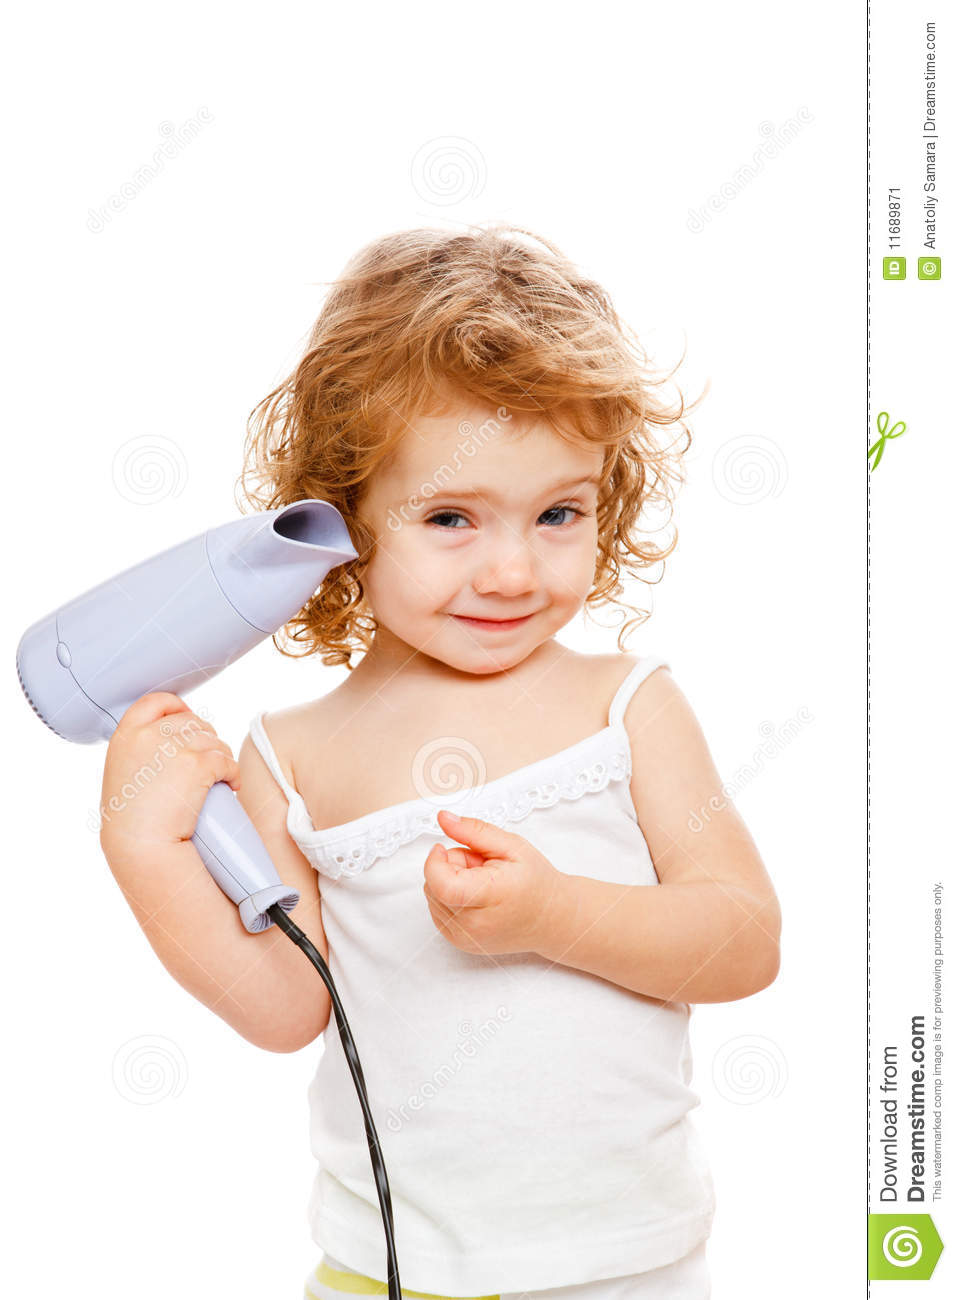 Drying Hair Stock Image Image 11689871